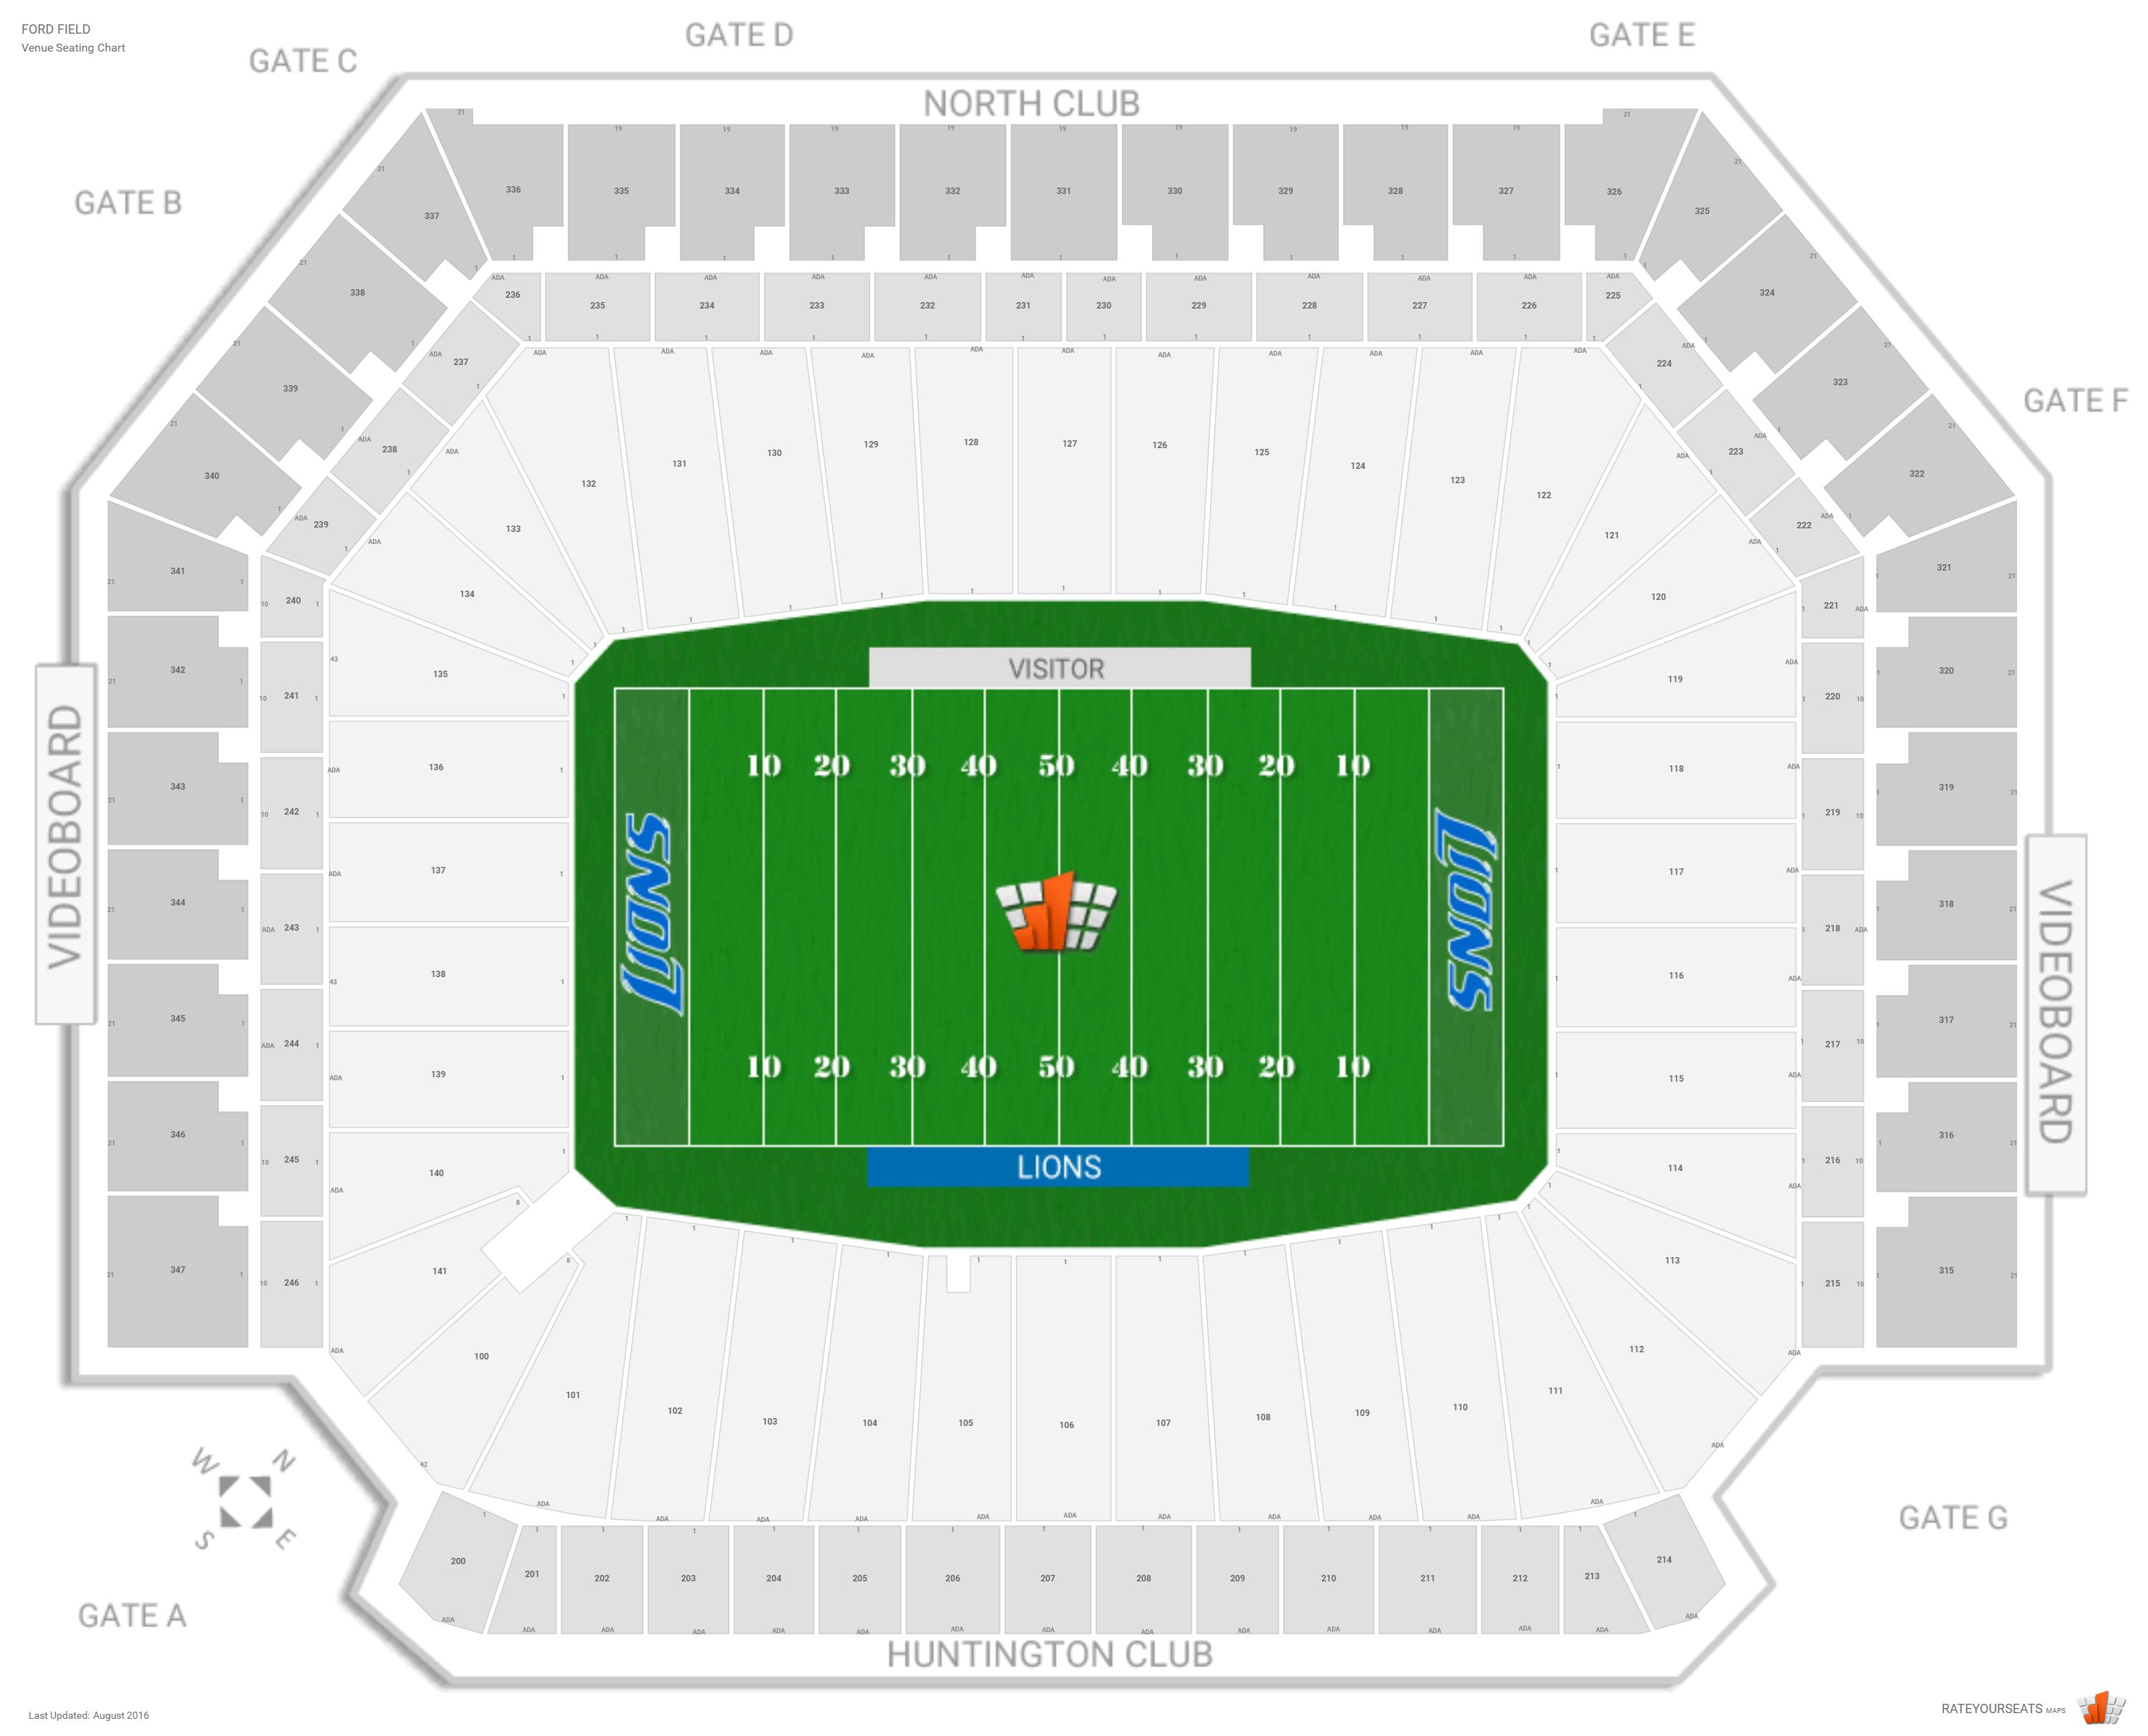 detroit lions seating guide ford field rateyourseats rh rateyourseats ford field pictures seats ford field seating pictures